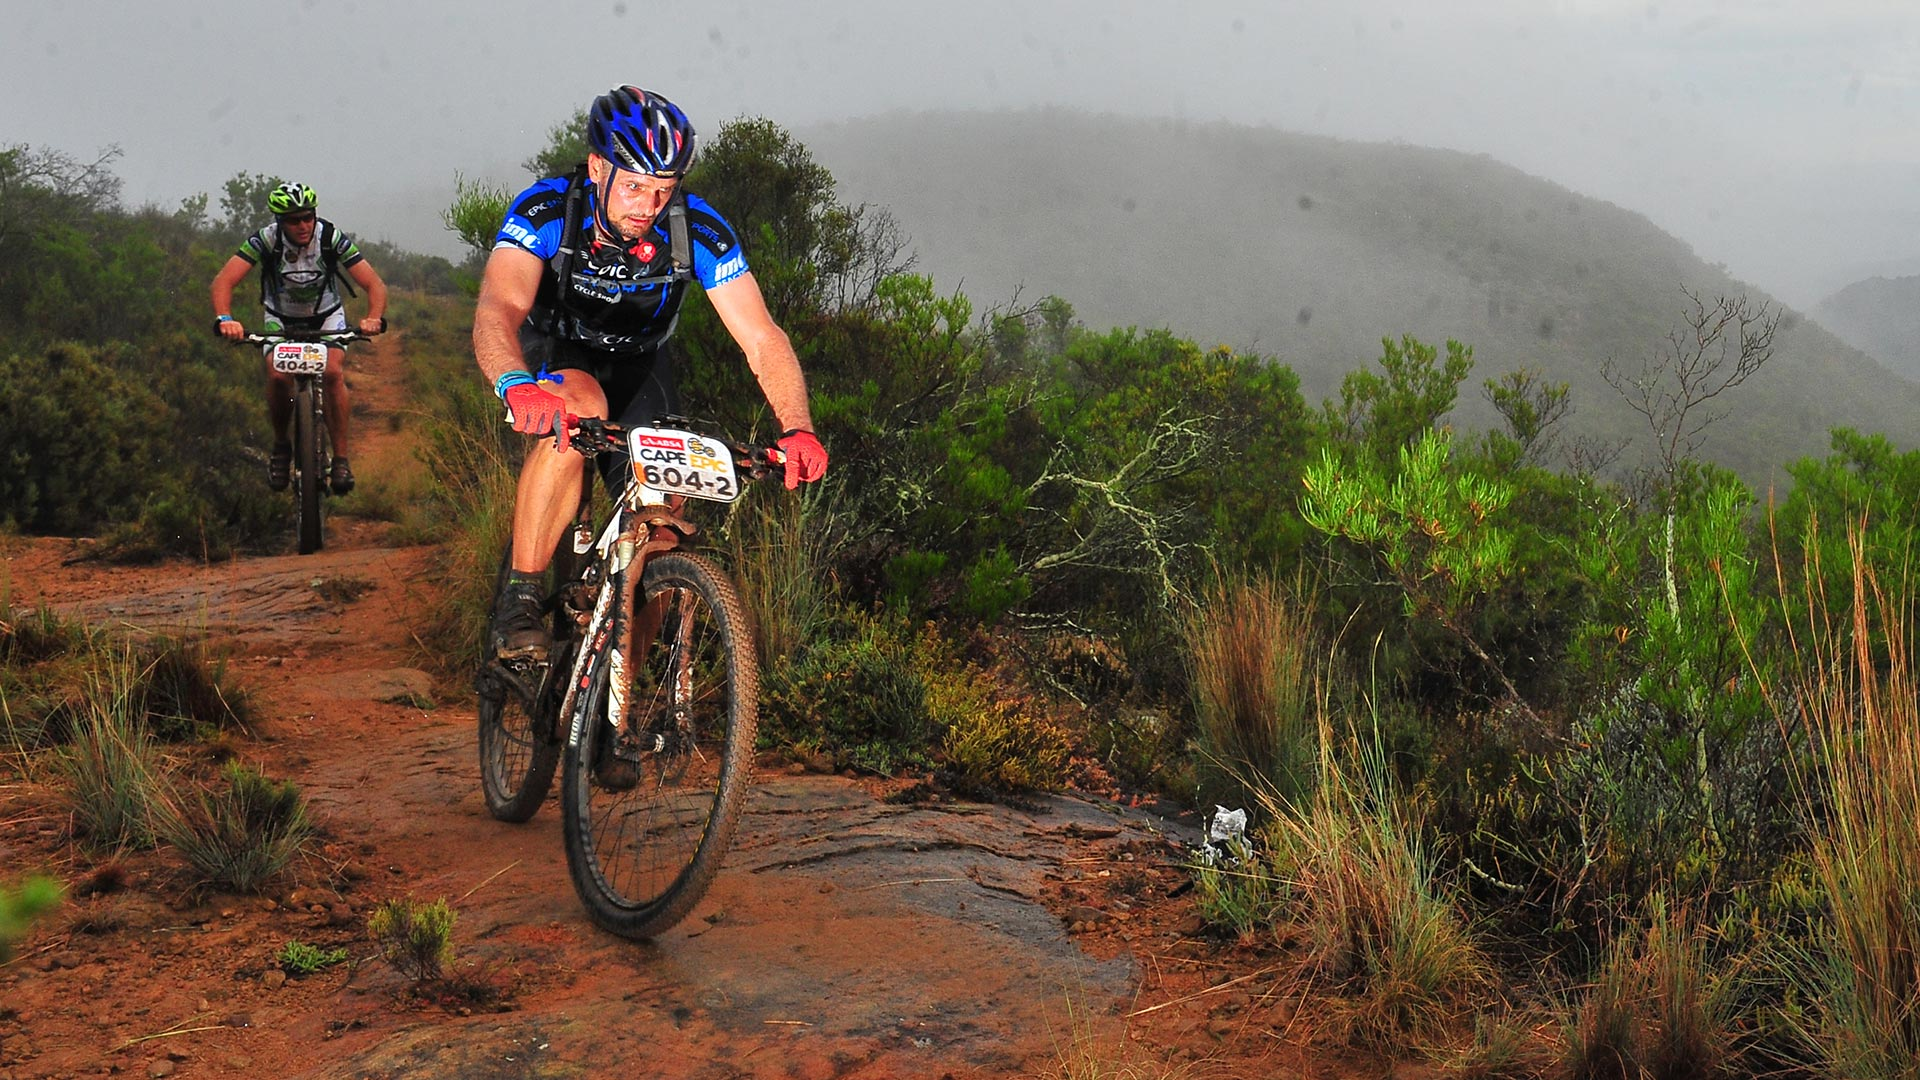 Coen van Tonder pursued by another contestant riding his mountain bike down a muddy course